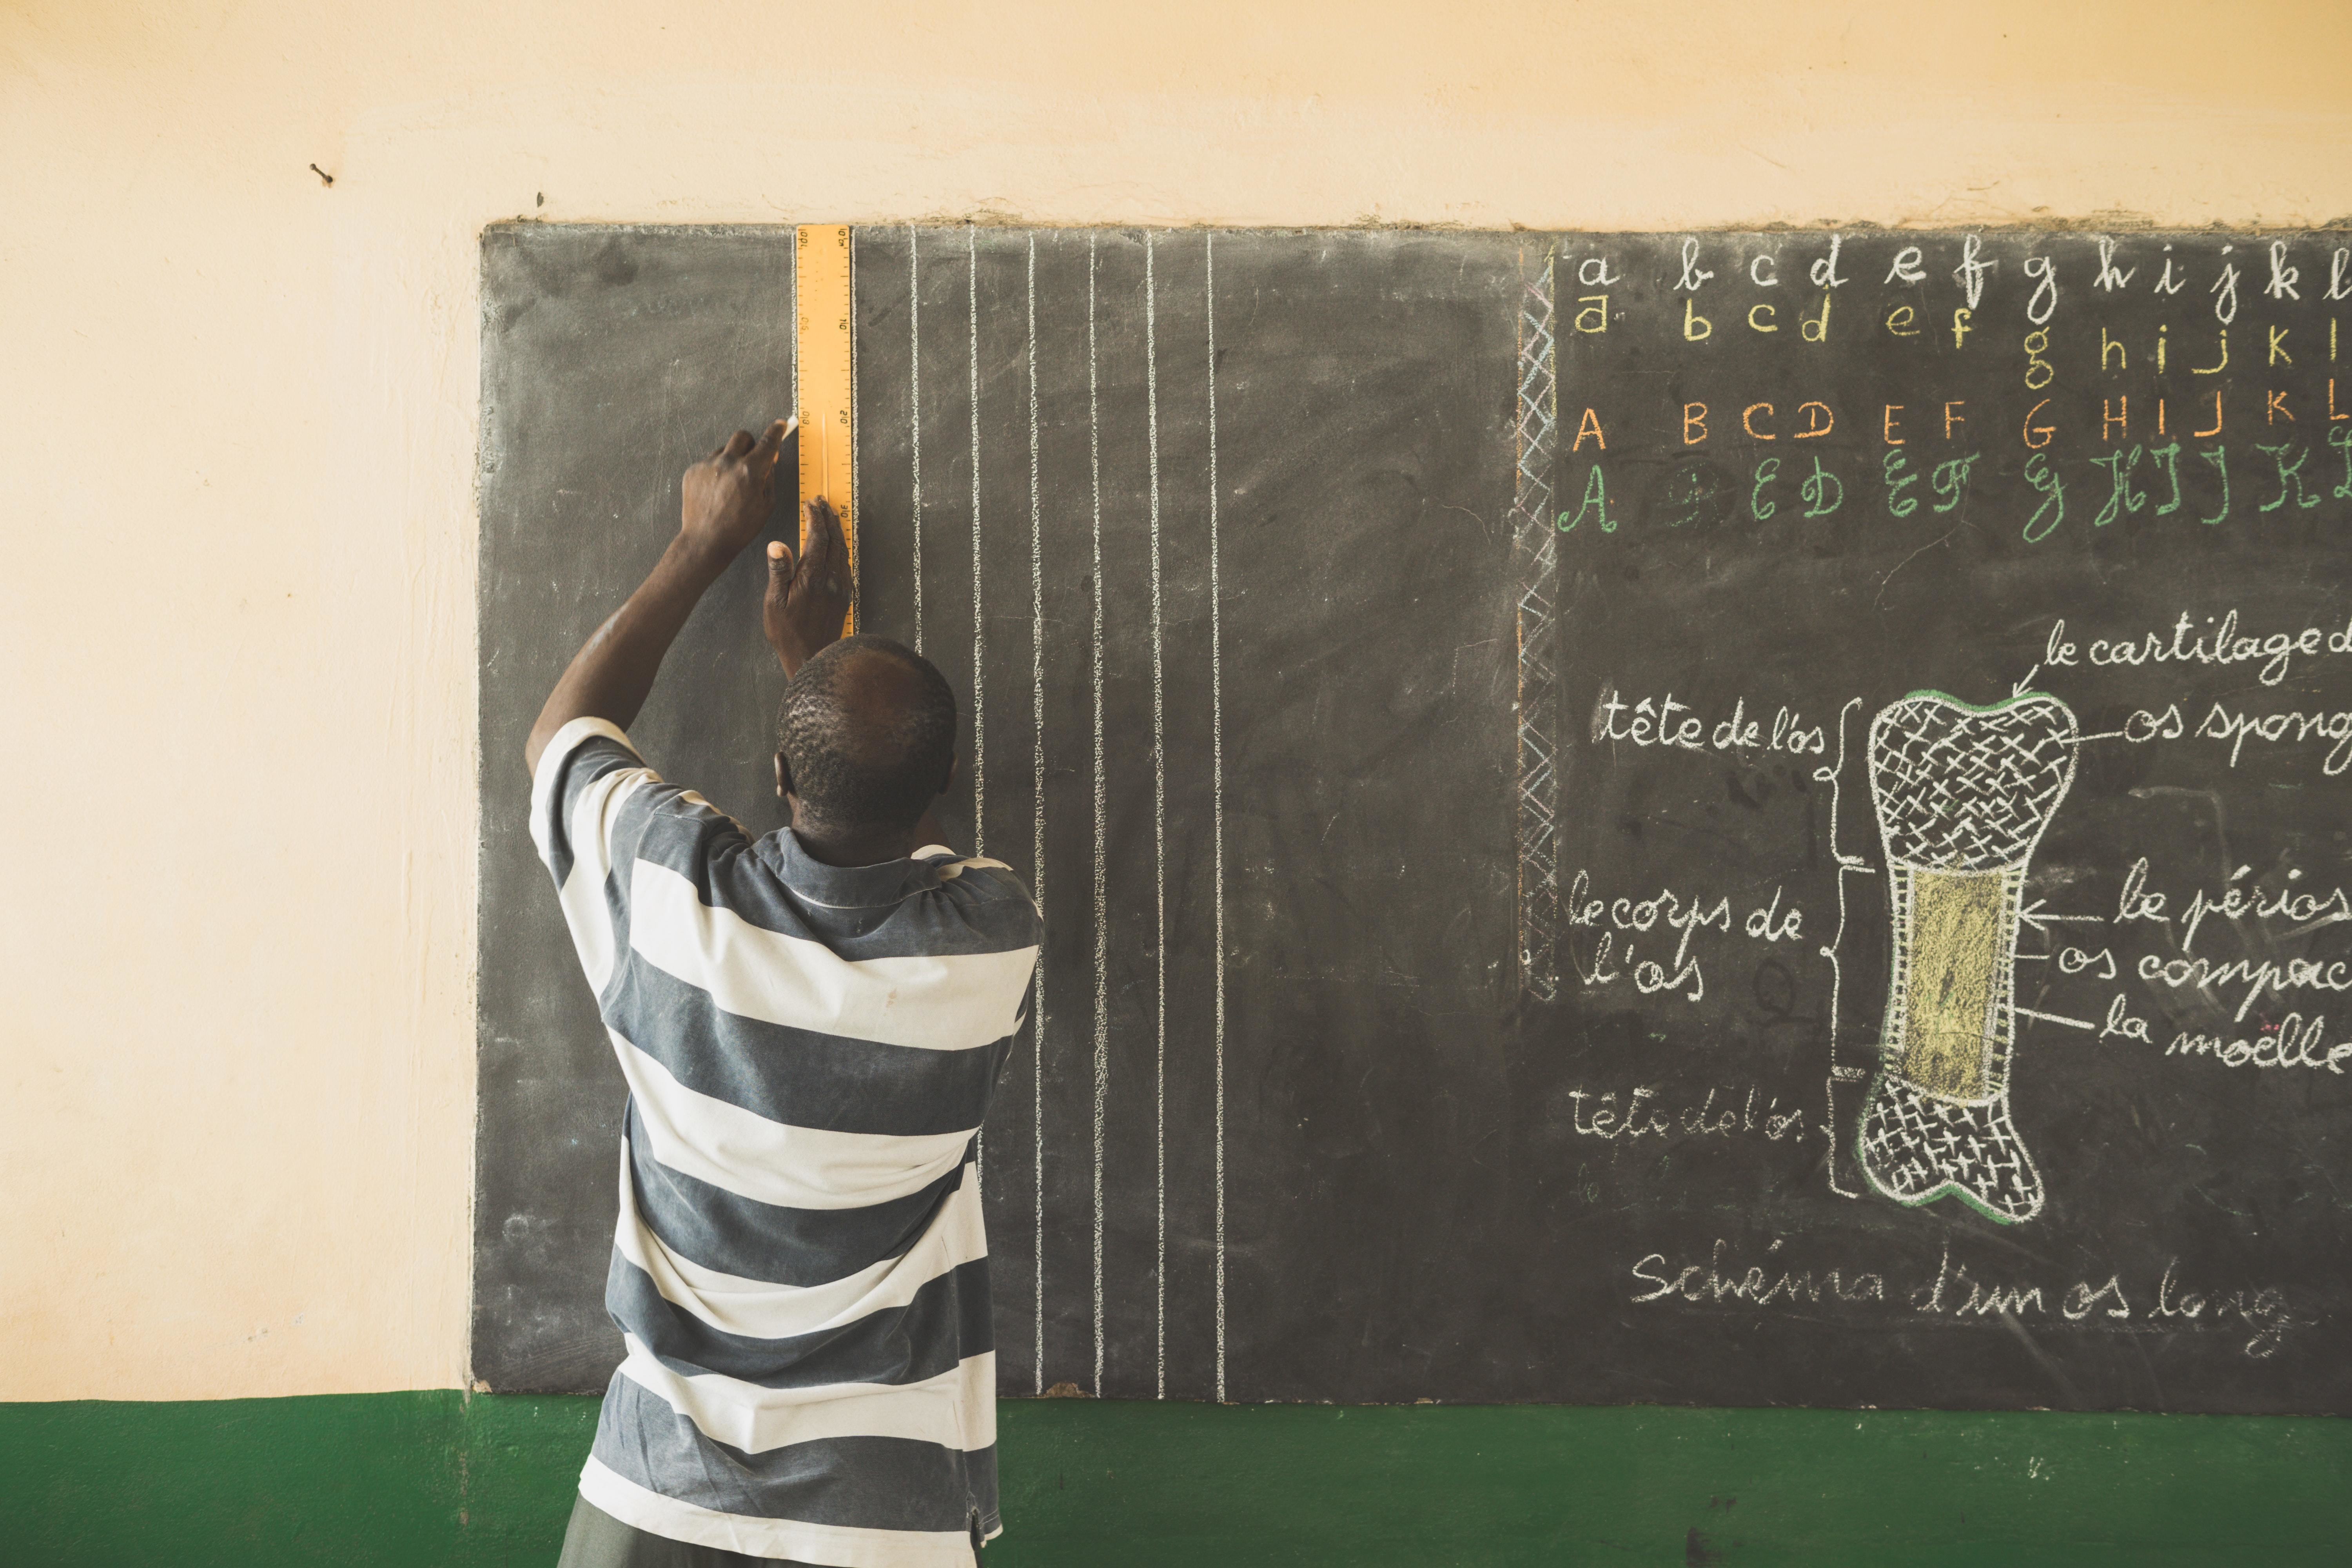 A man in a black and white shirt writing on a chalk board